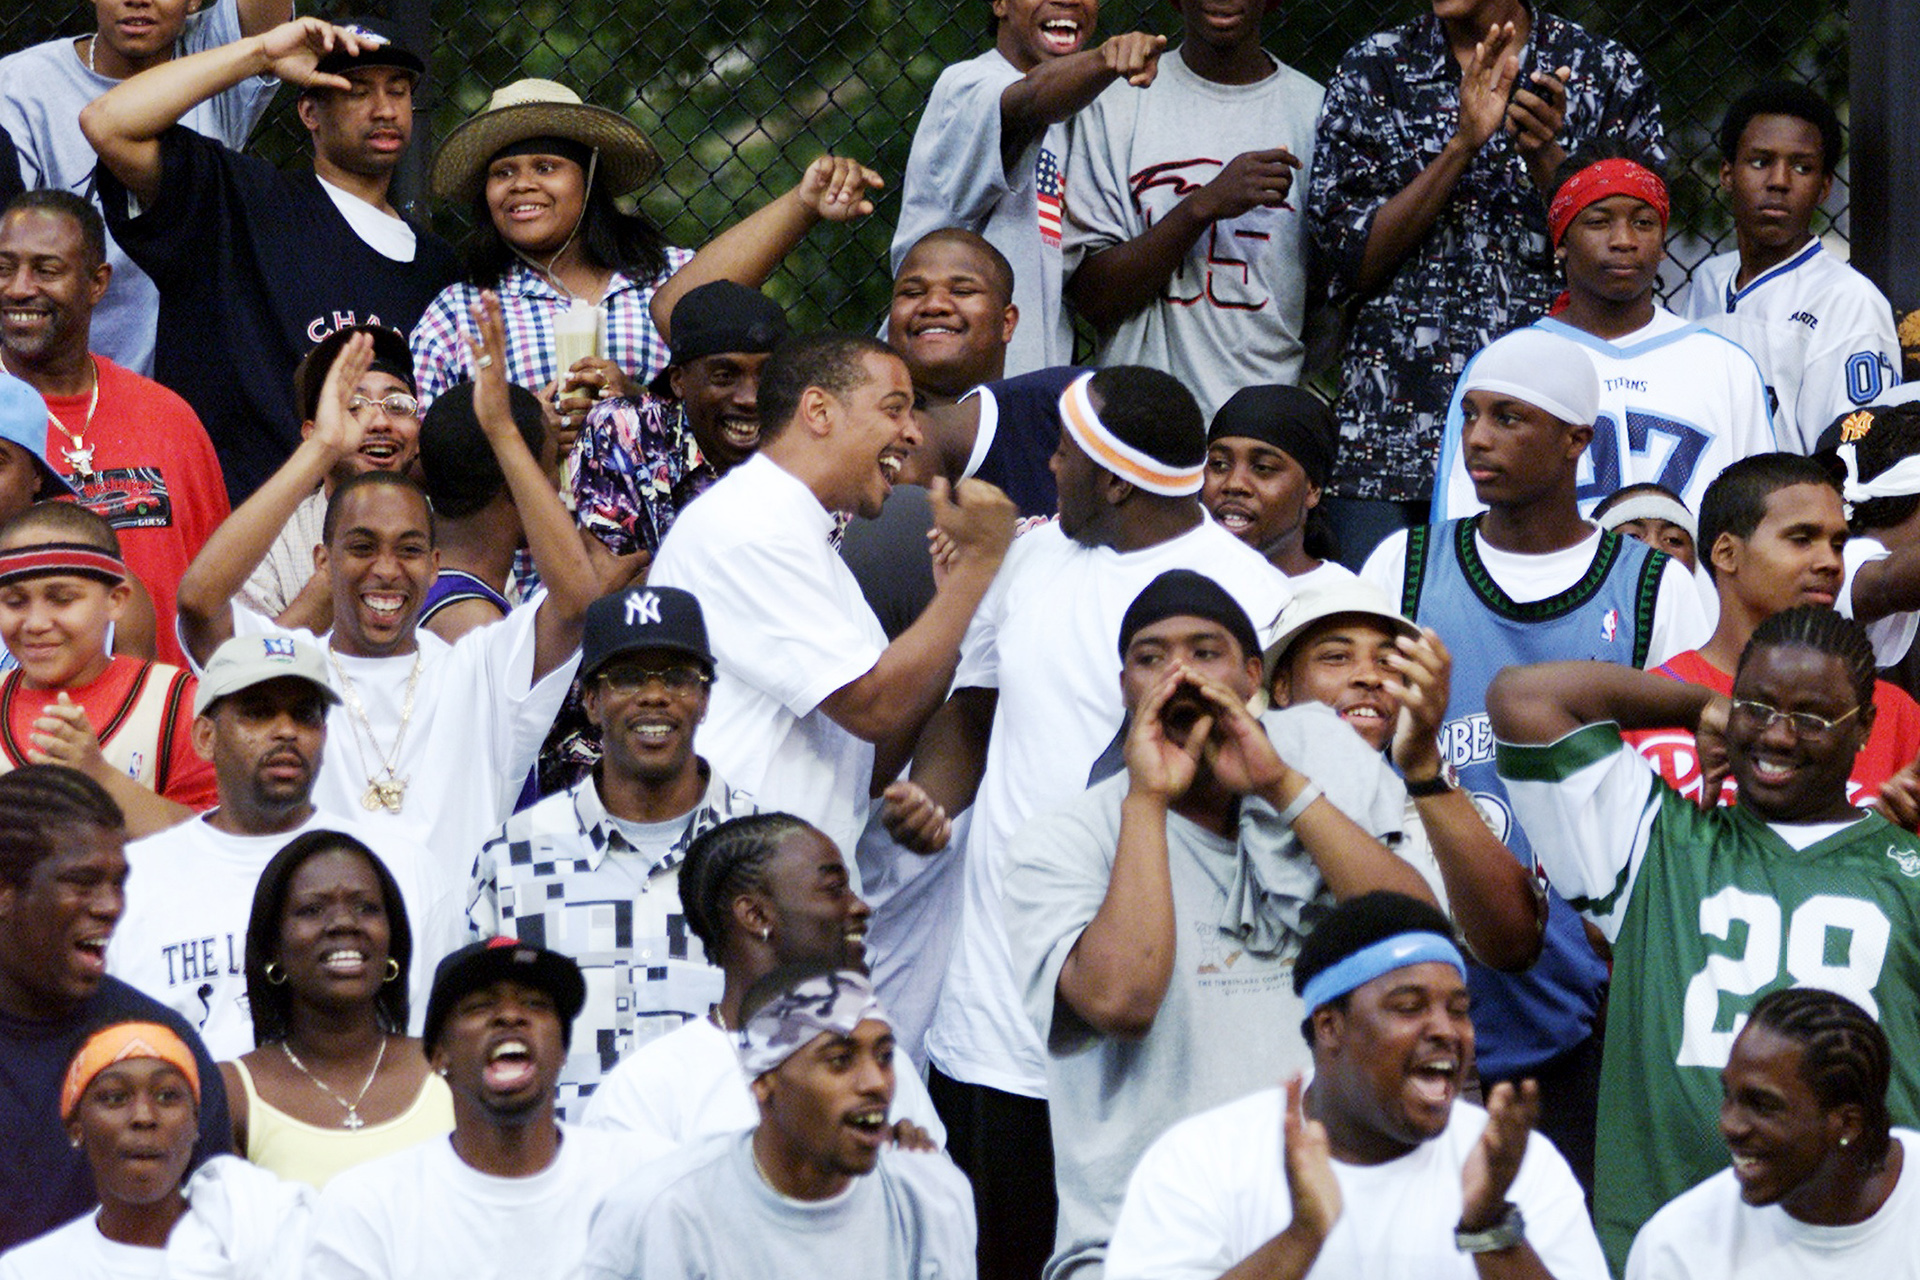 UNITED STATES - CIRCA 2000:  Fans are in the mood for action on opening day of the basketball season at Rucker Park, 155th St. and Eighth Ave.  (Photo by Corey Sipkin/NY Daily News Archive via Getty Images)